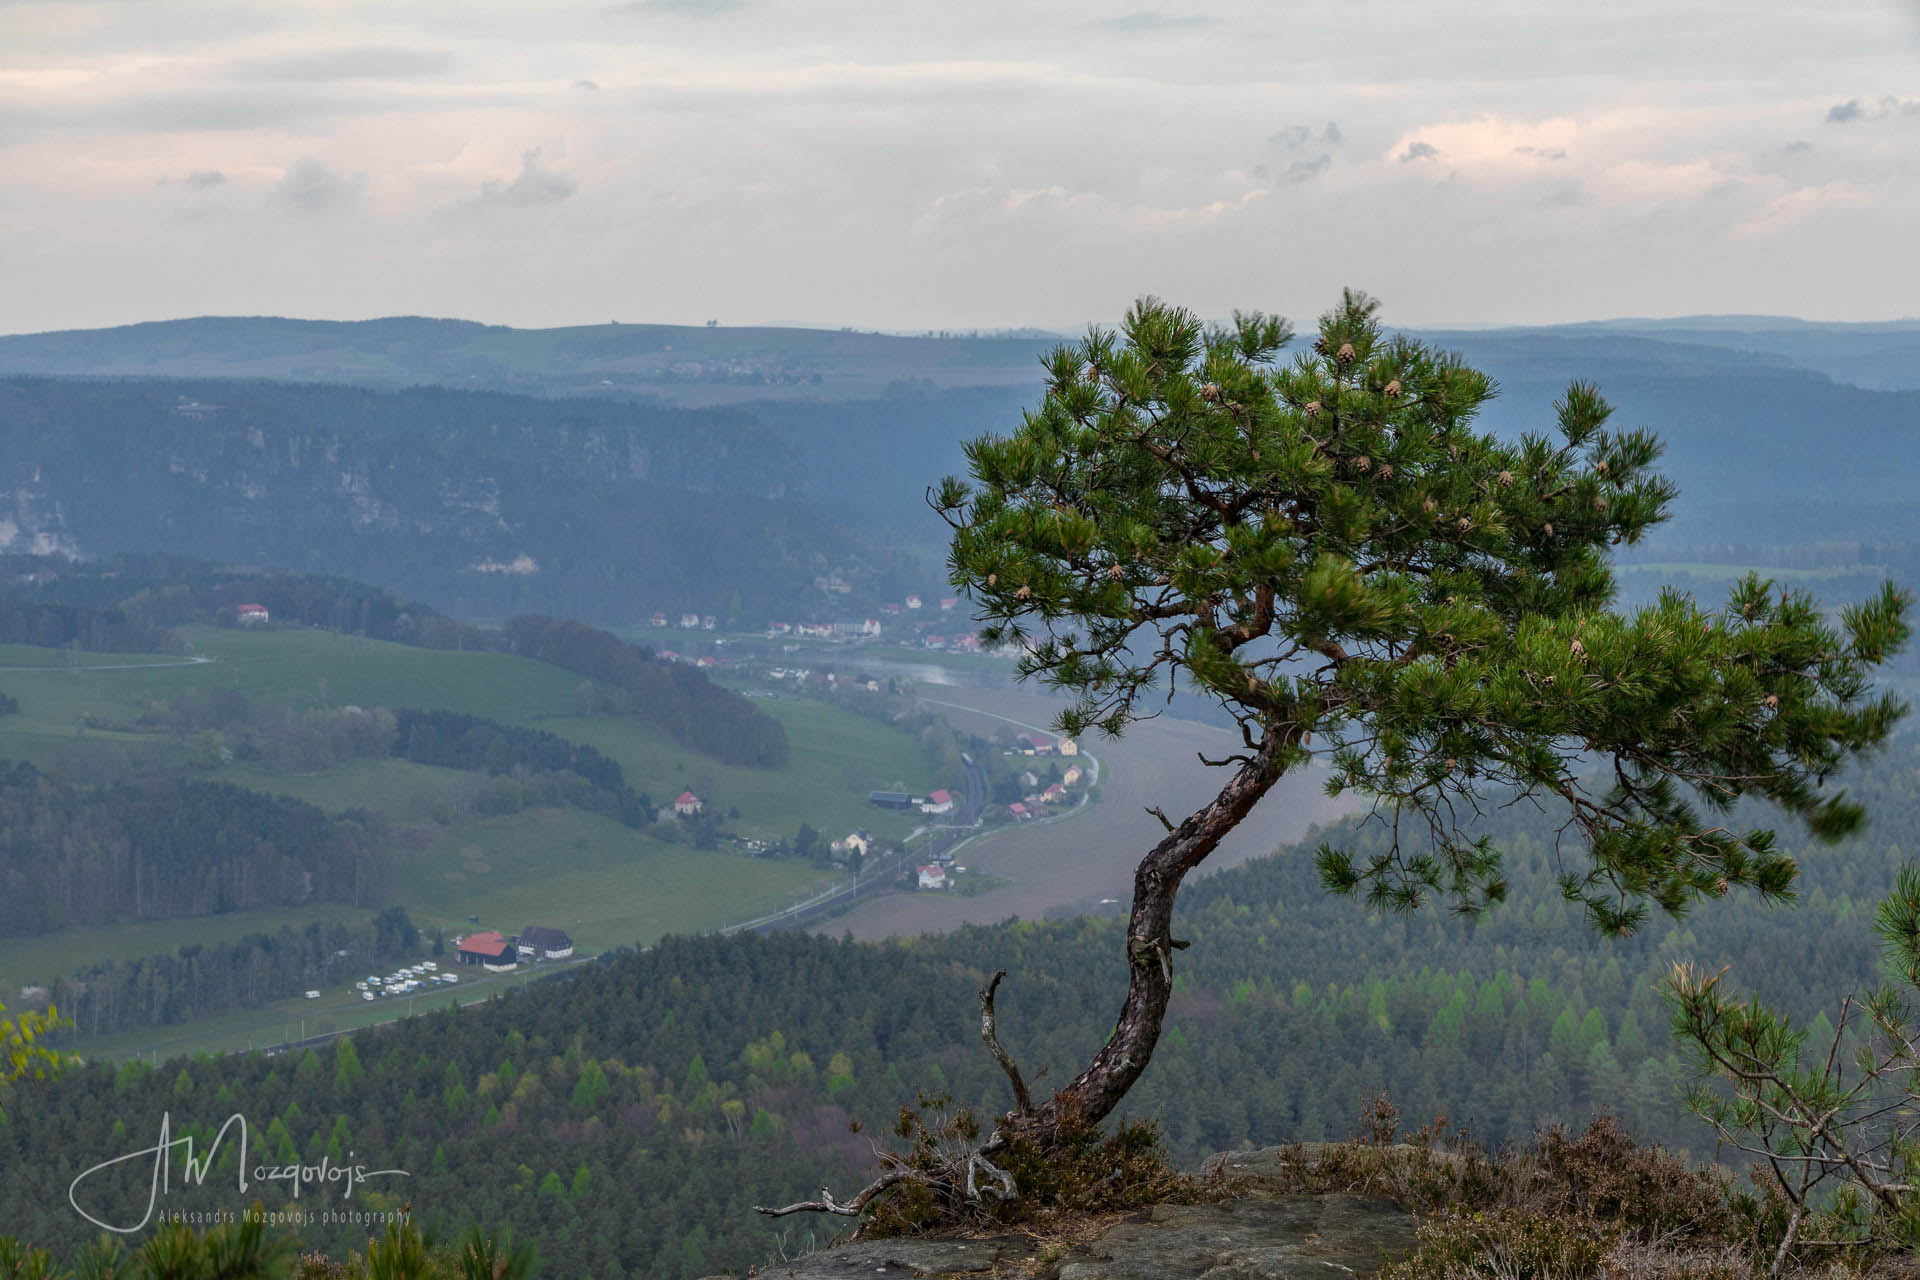 View from the top of Lilienstein